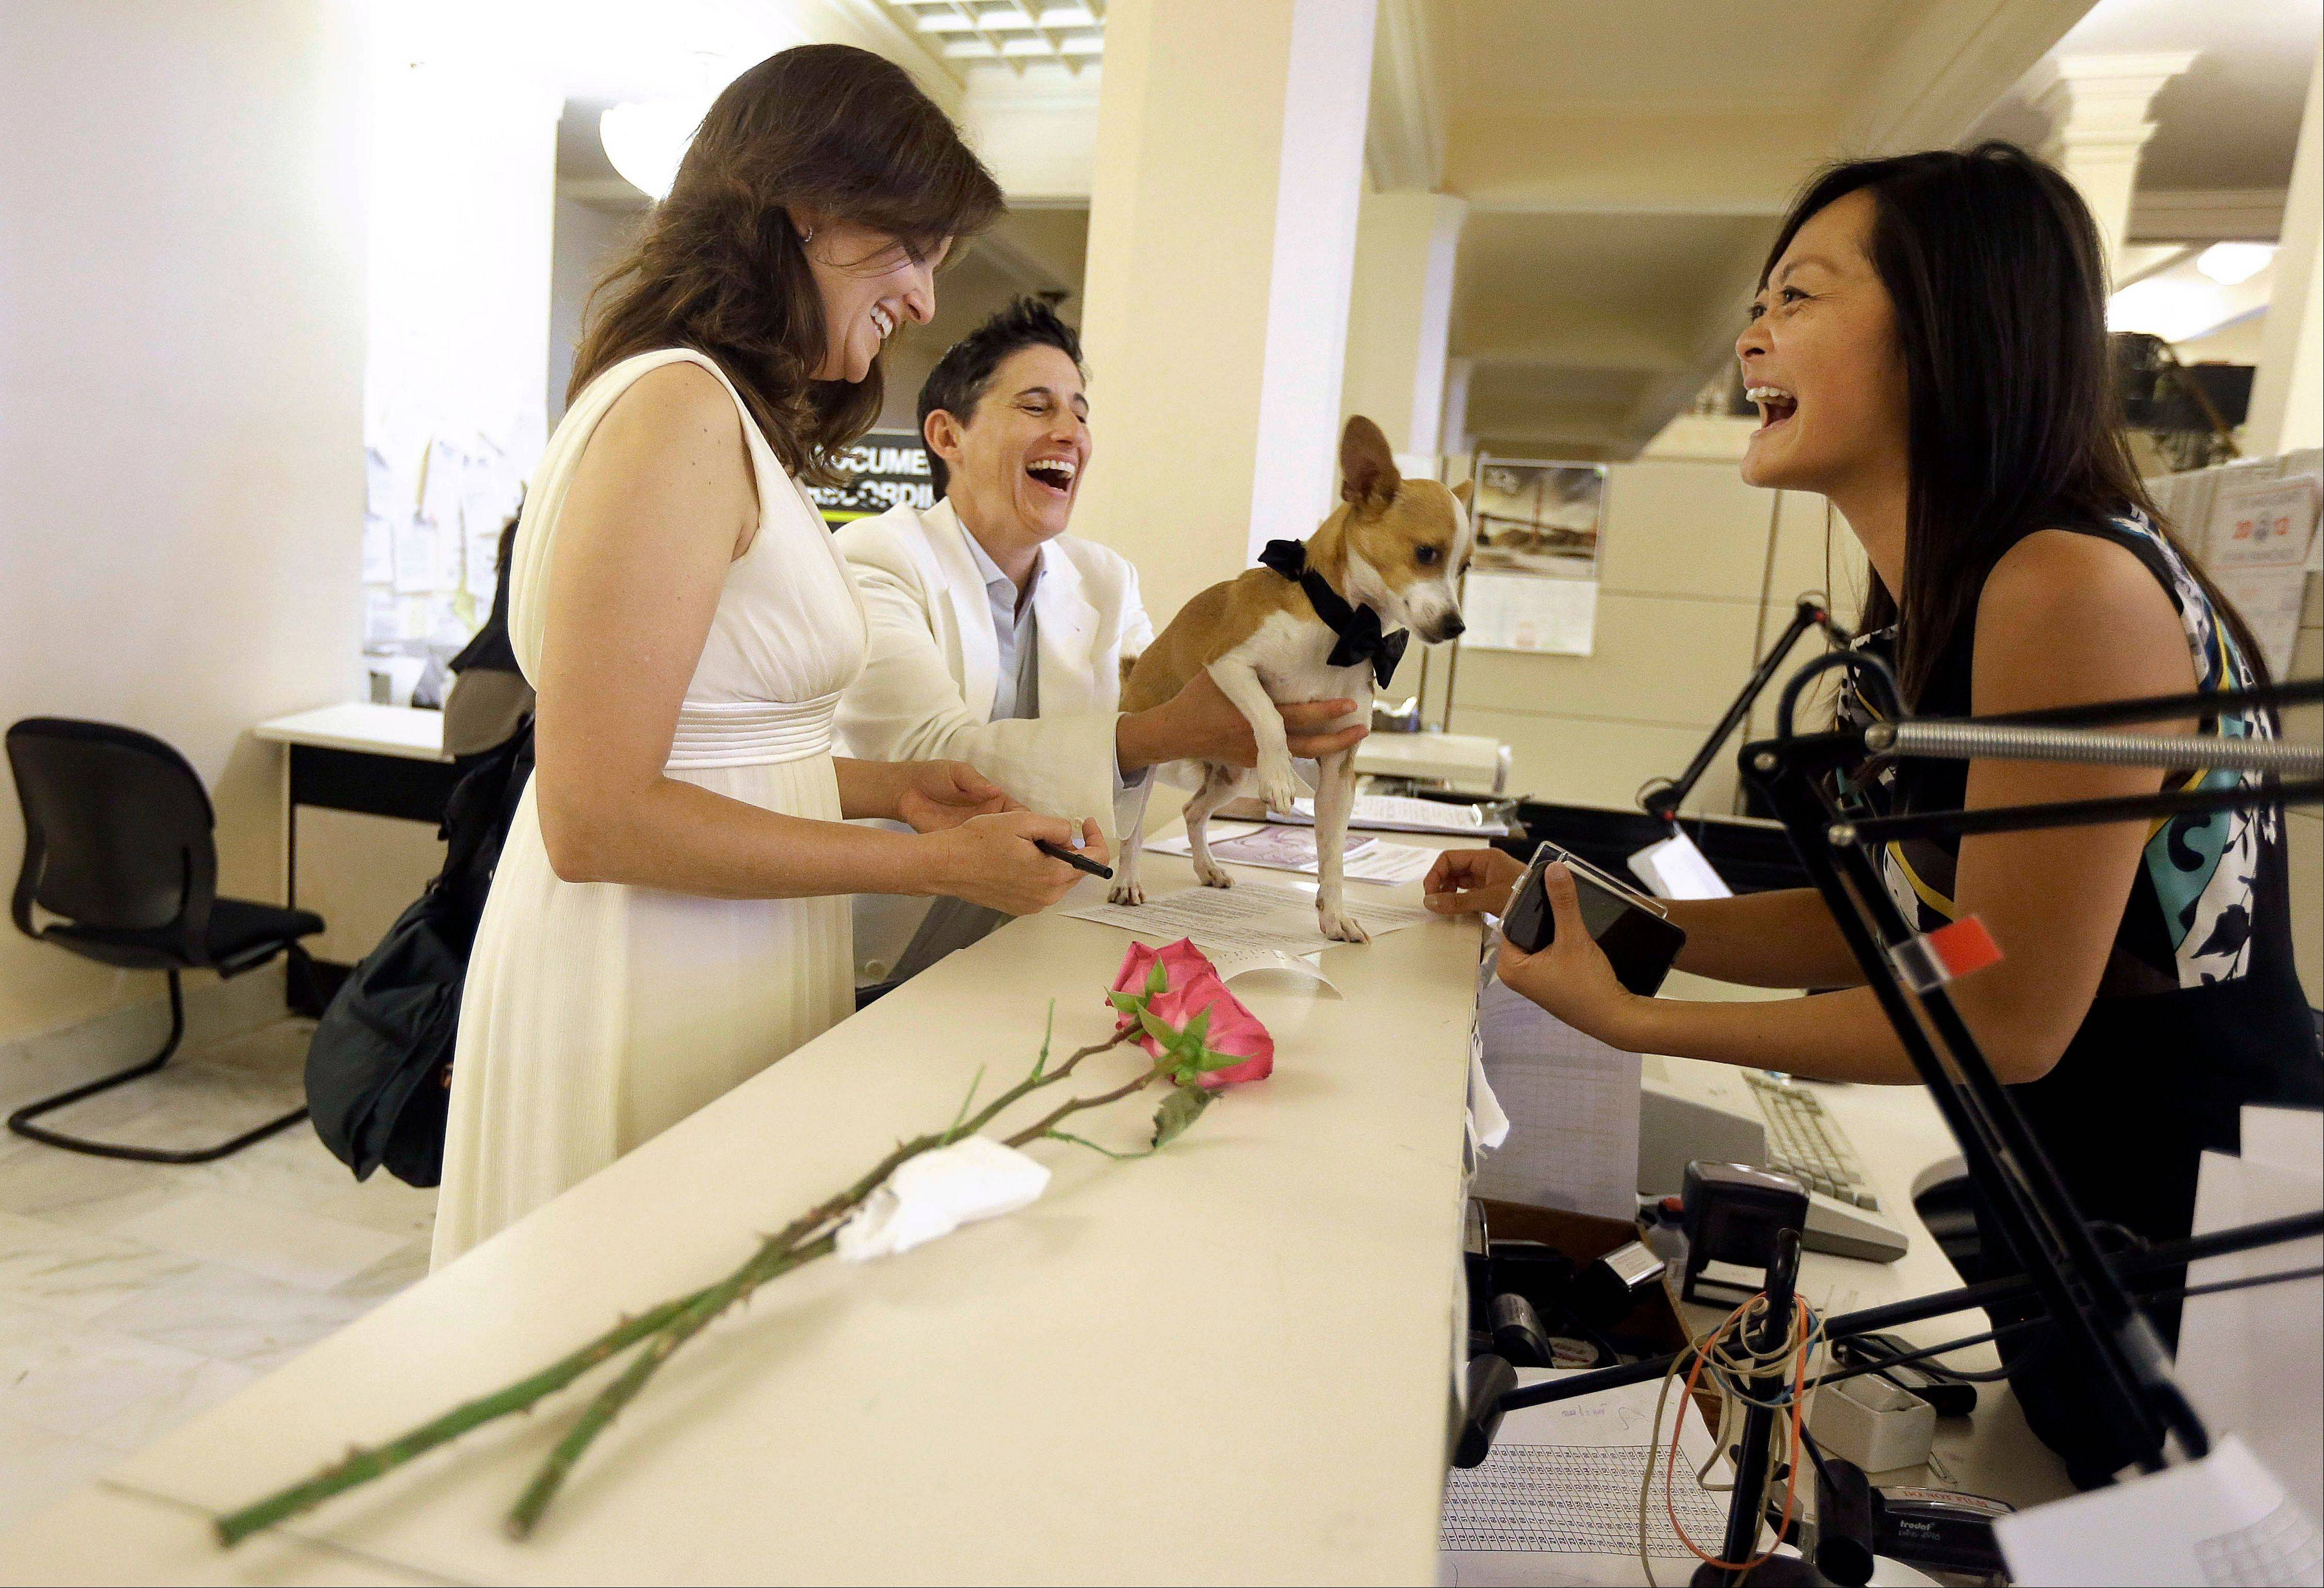 Assessor-Recorder Carmen Chu, right, laughs as Jen, left, and Frances Rainin�s dog Punum climbs on the counter as they fill out paper work for their marriage certificate after they were married at City Hall in San Francisco, Friday, June 28, 2013. A three-judge panel of the 9th U.S. Circuit Court of Appeals issued a brief order Friday afternoon dissolving, �effective immediately,� a stay it imposed on gay marriages while the lawsuit challenging the ban advanced through the courts.